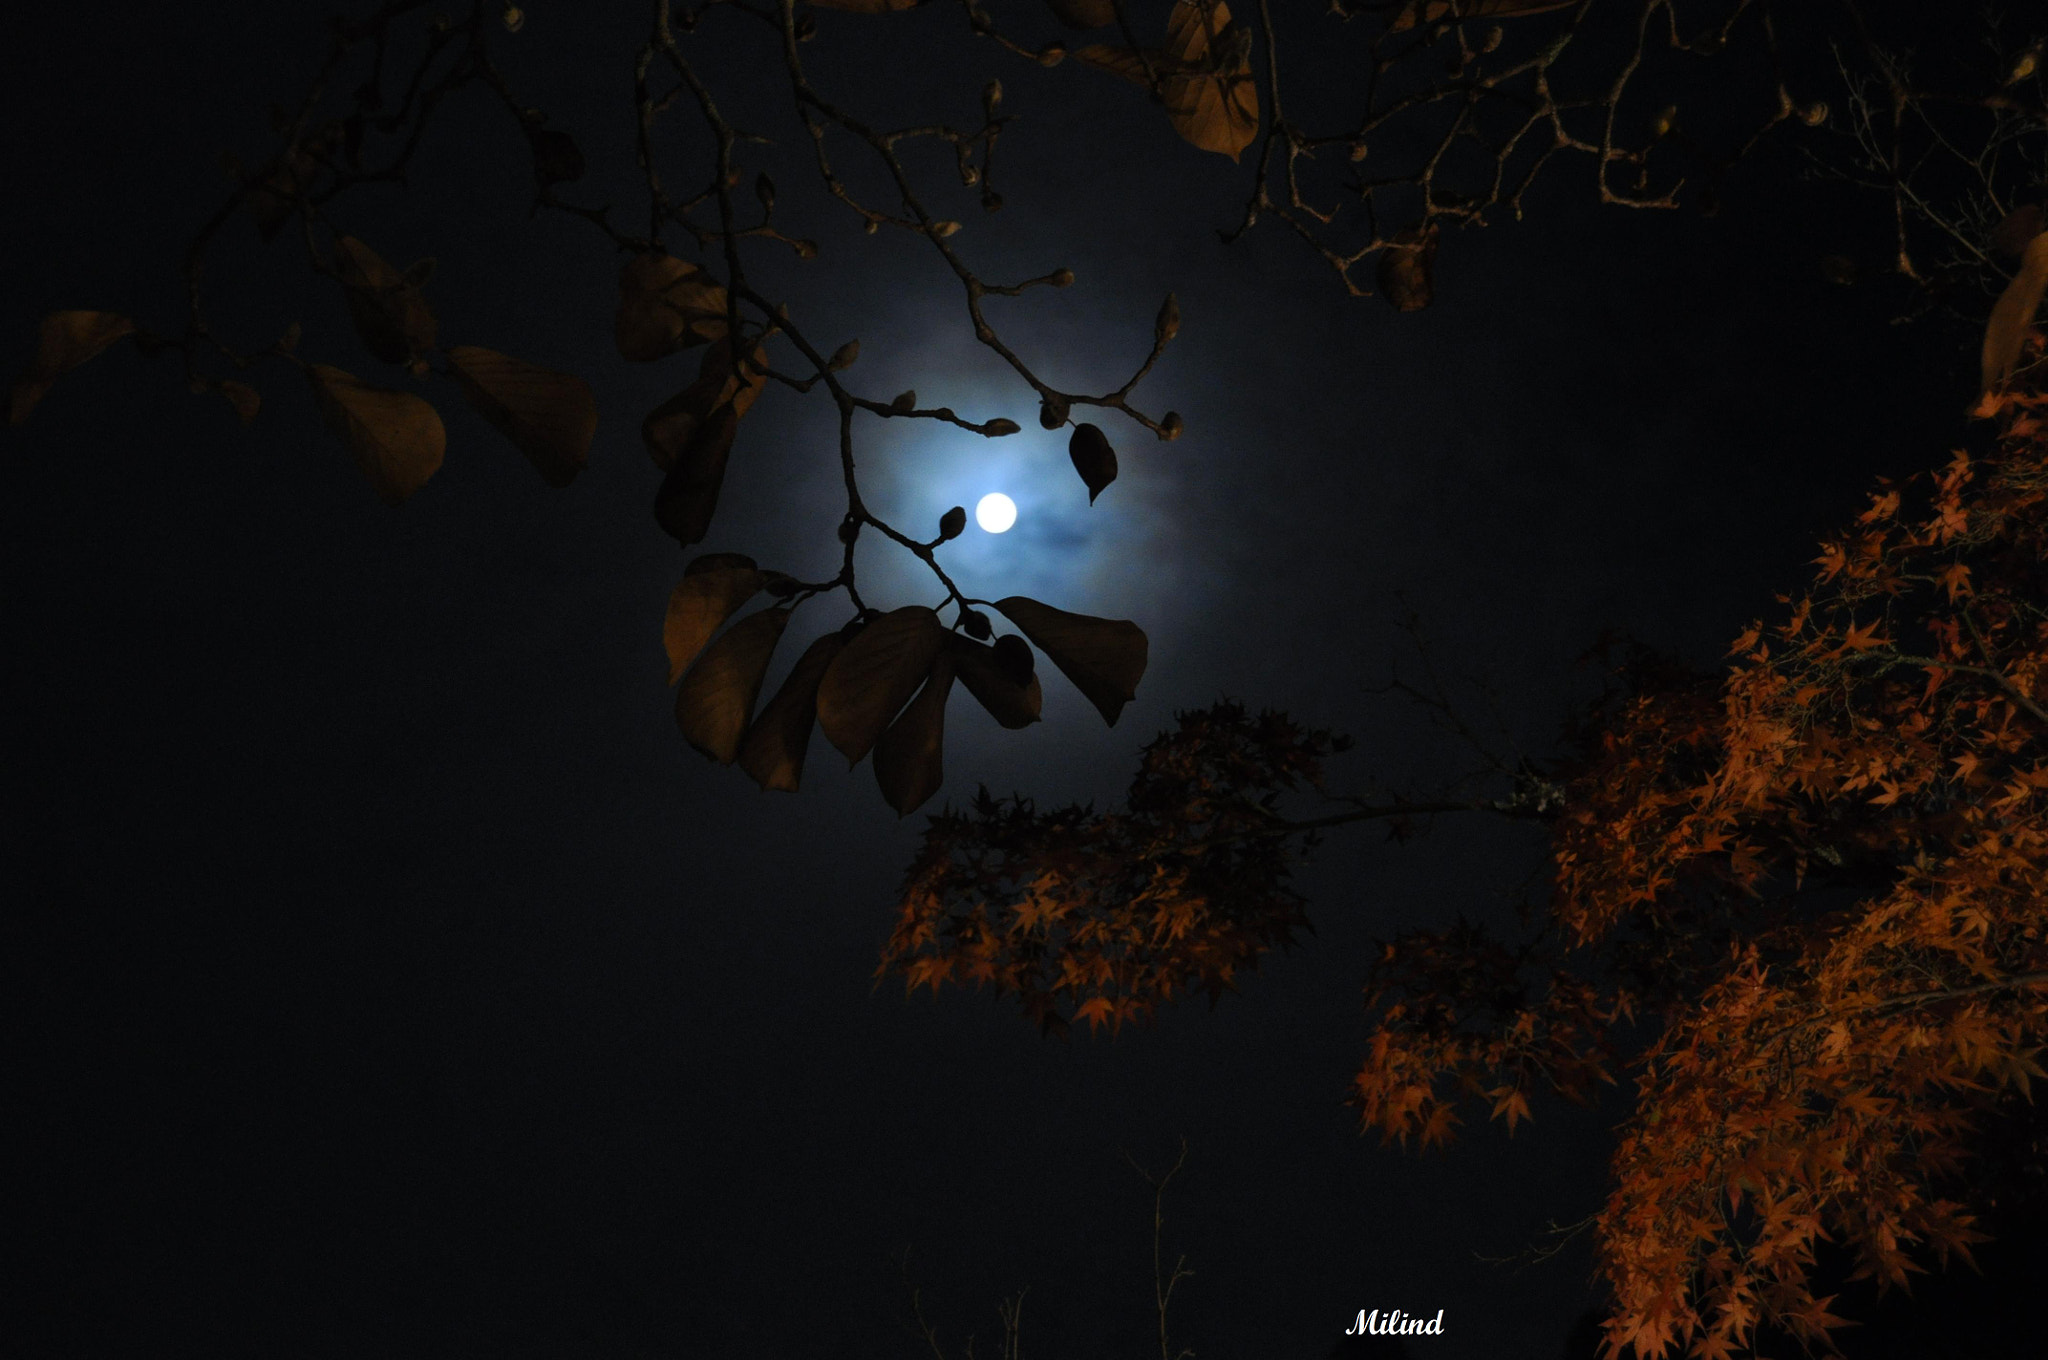 Photograph The Moon and The Fall by मि. देशमुख on 500px